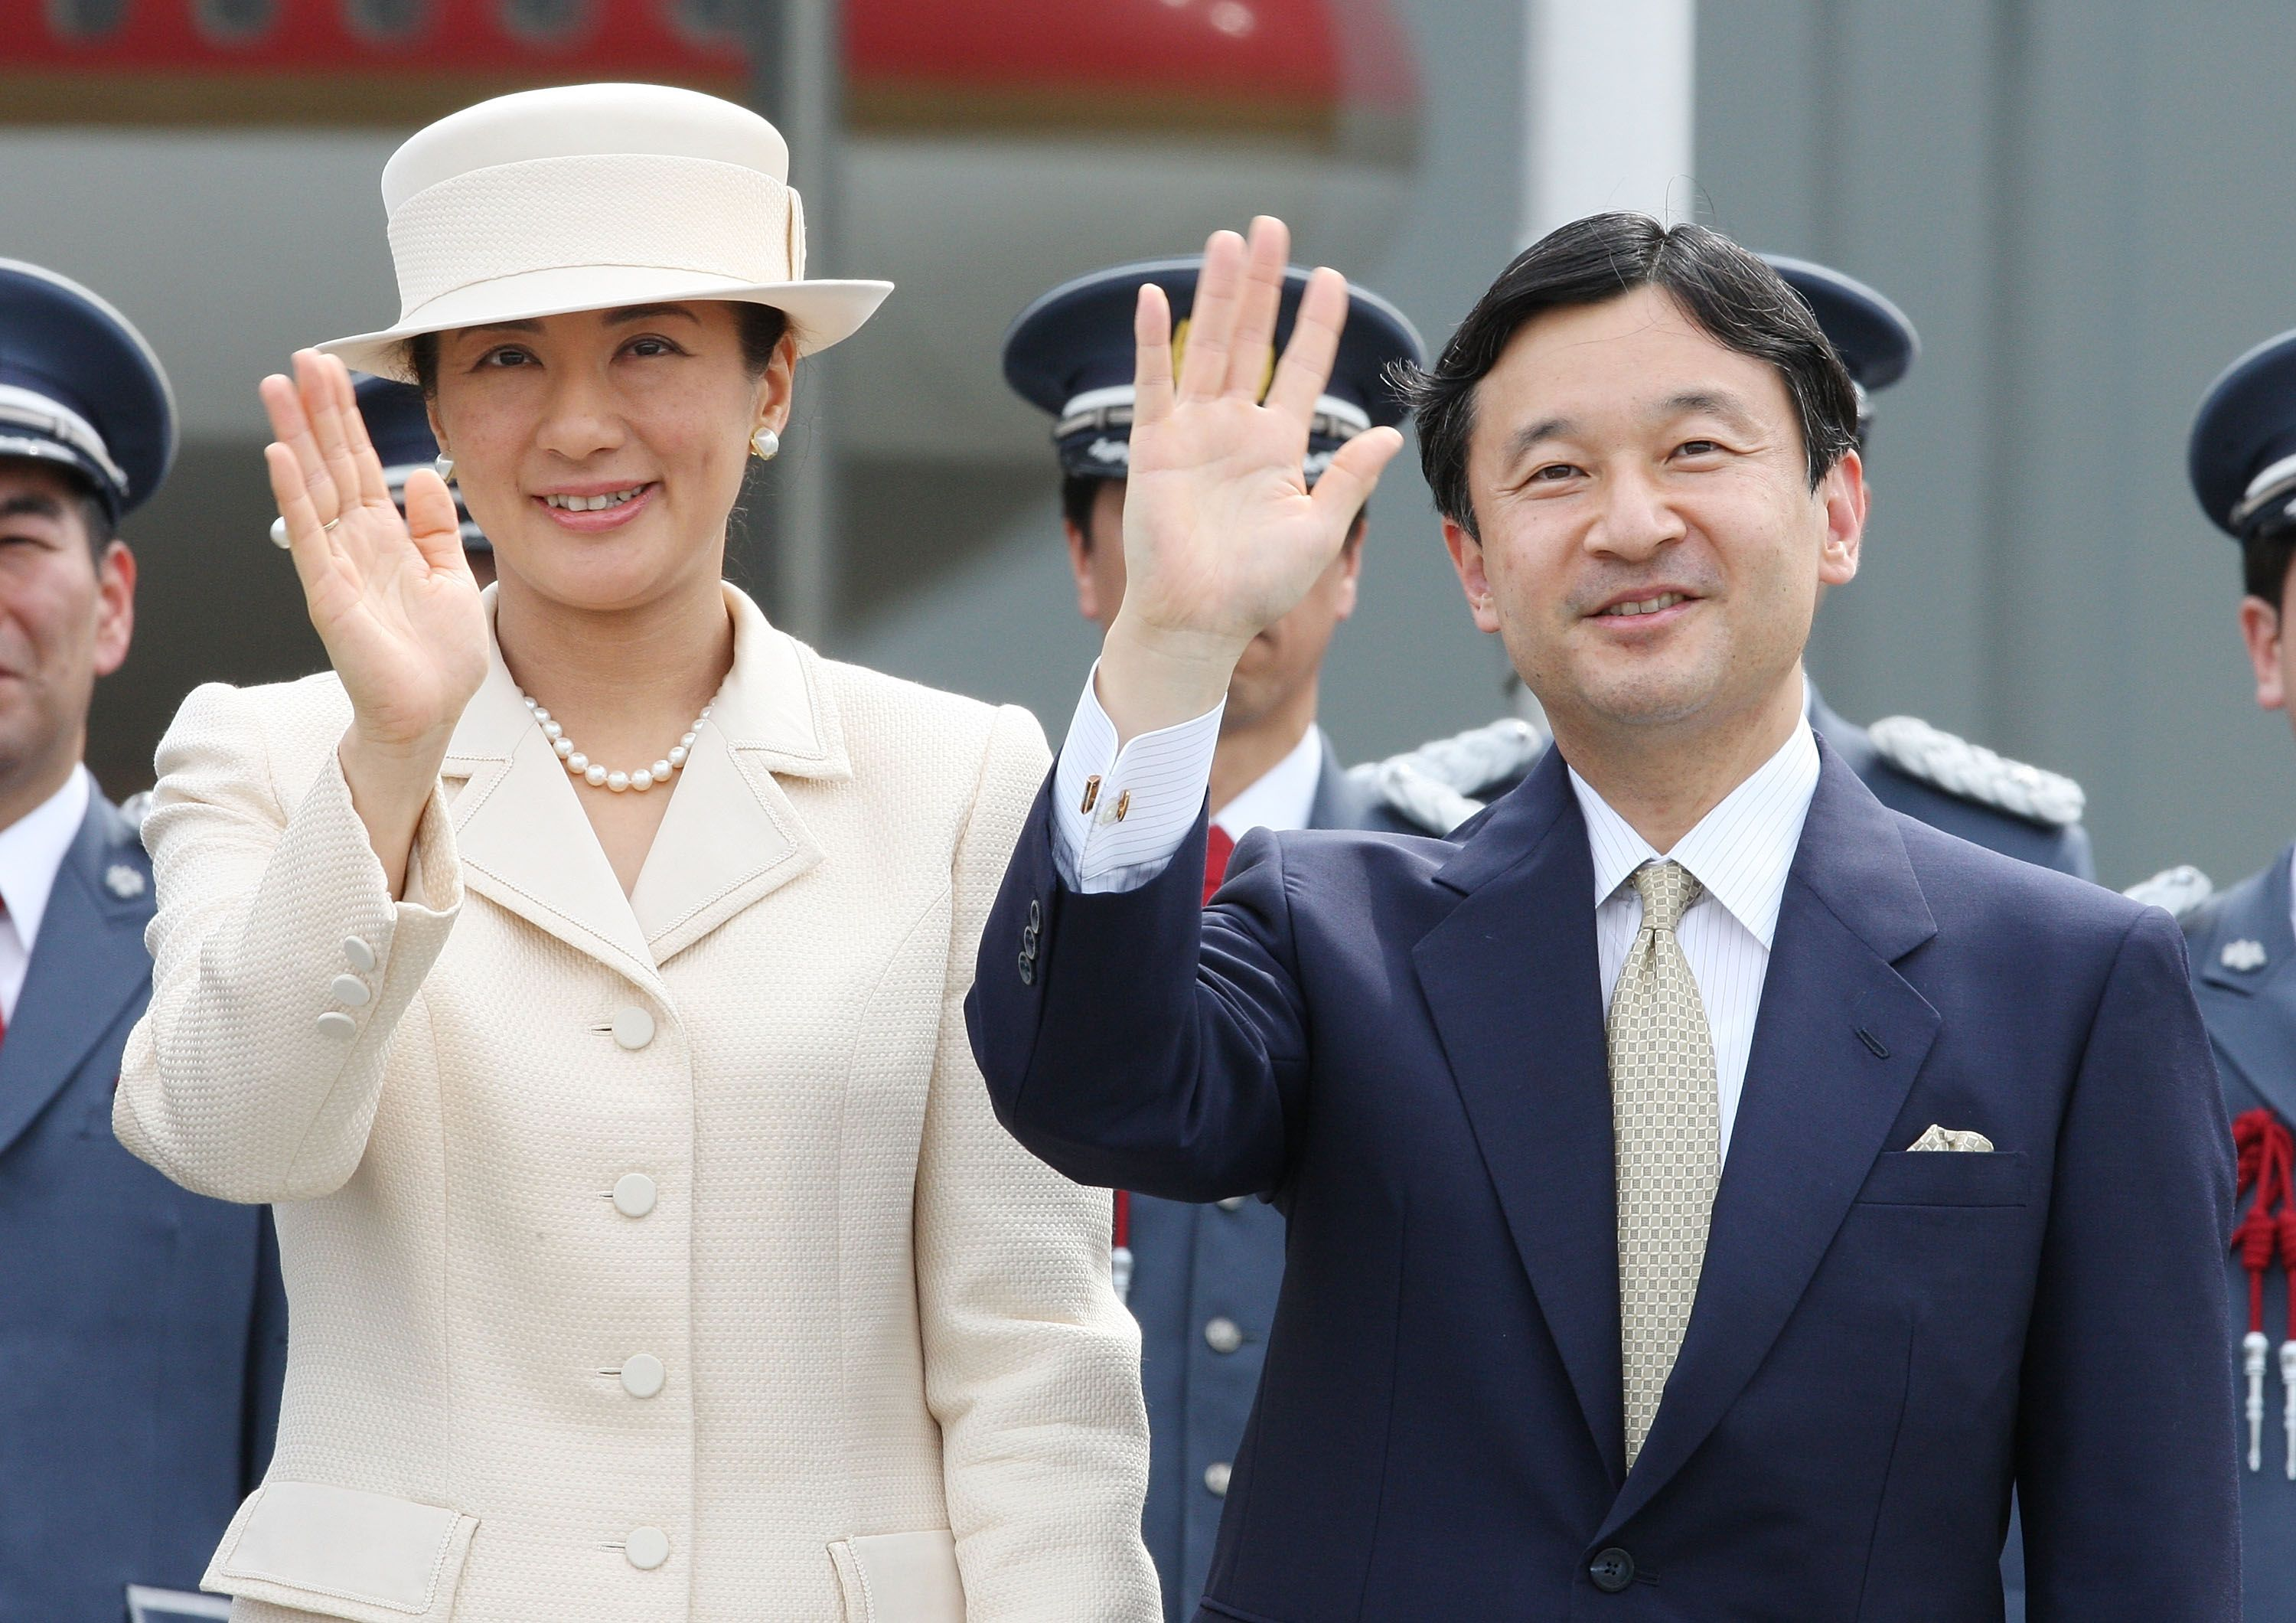 Naruhito: Japan's 126th emperor proclaims enthronement in ancient ceremony